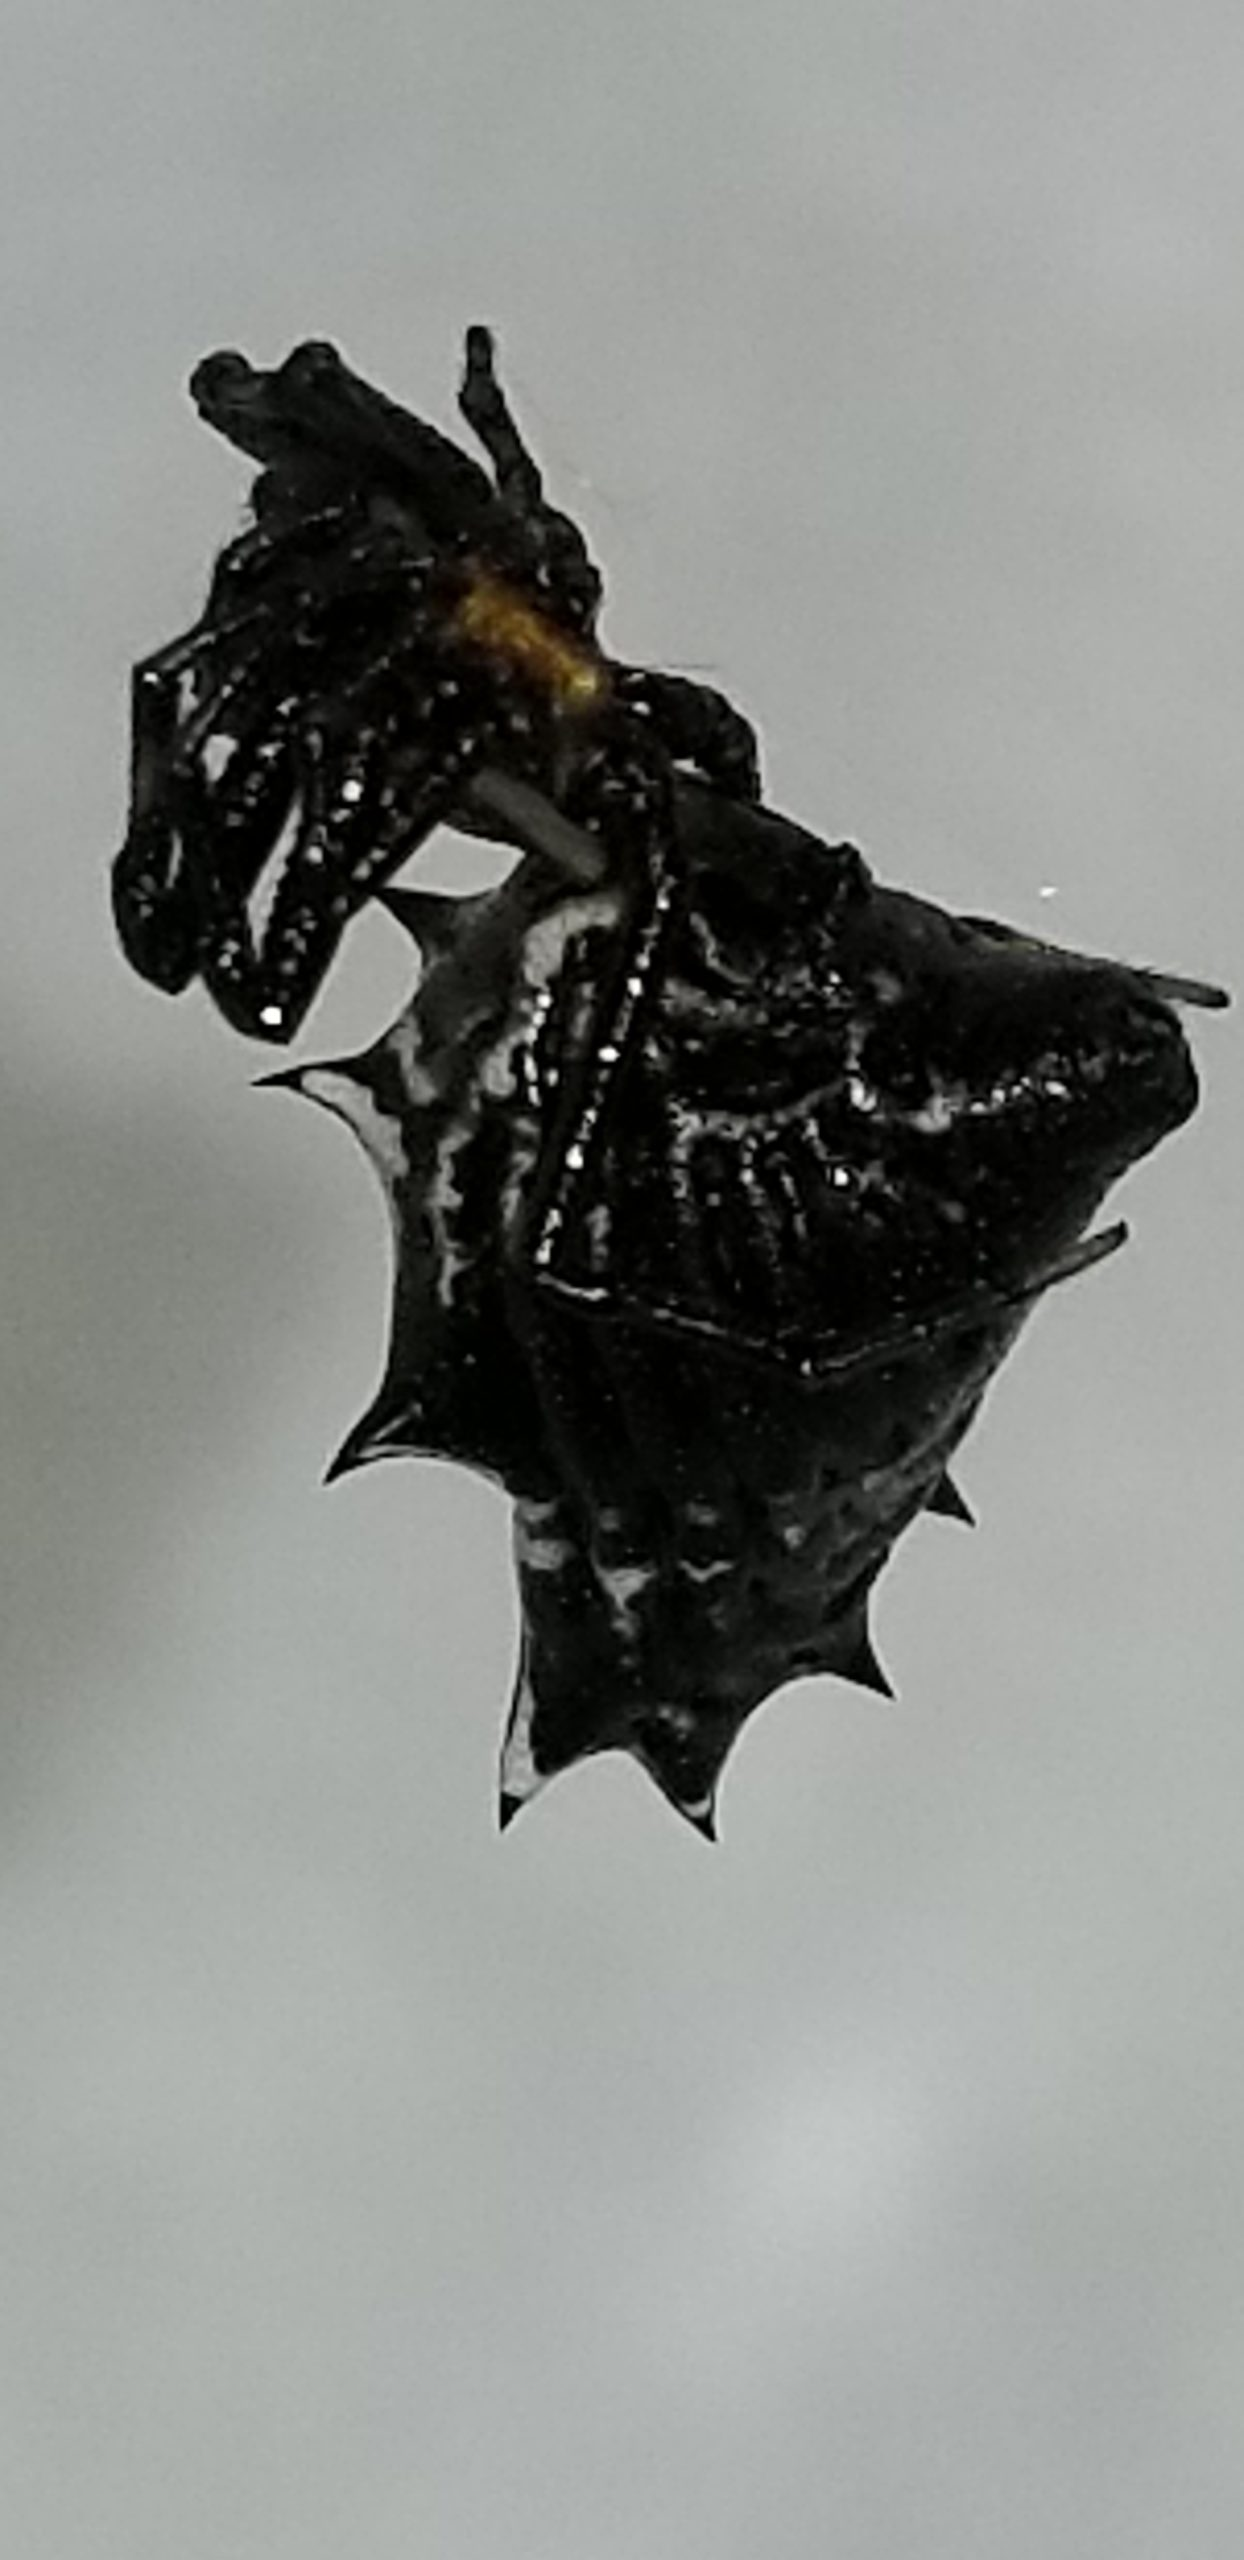 Picture of Micrathena gracilis (Spined Micrathena) - Female - Lateral